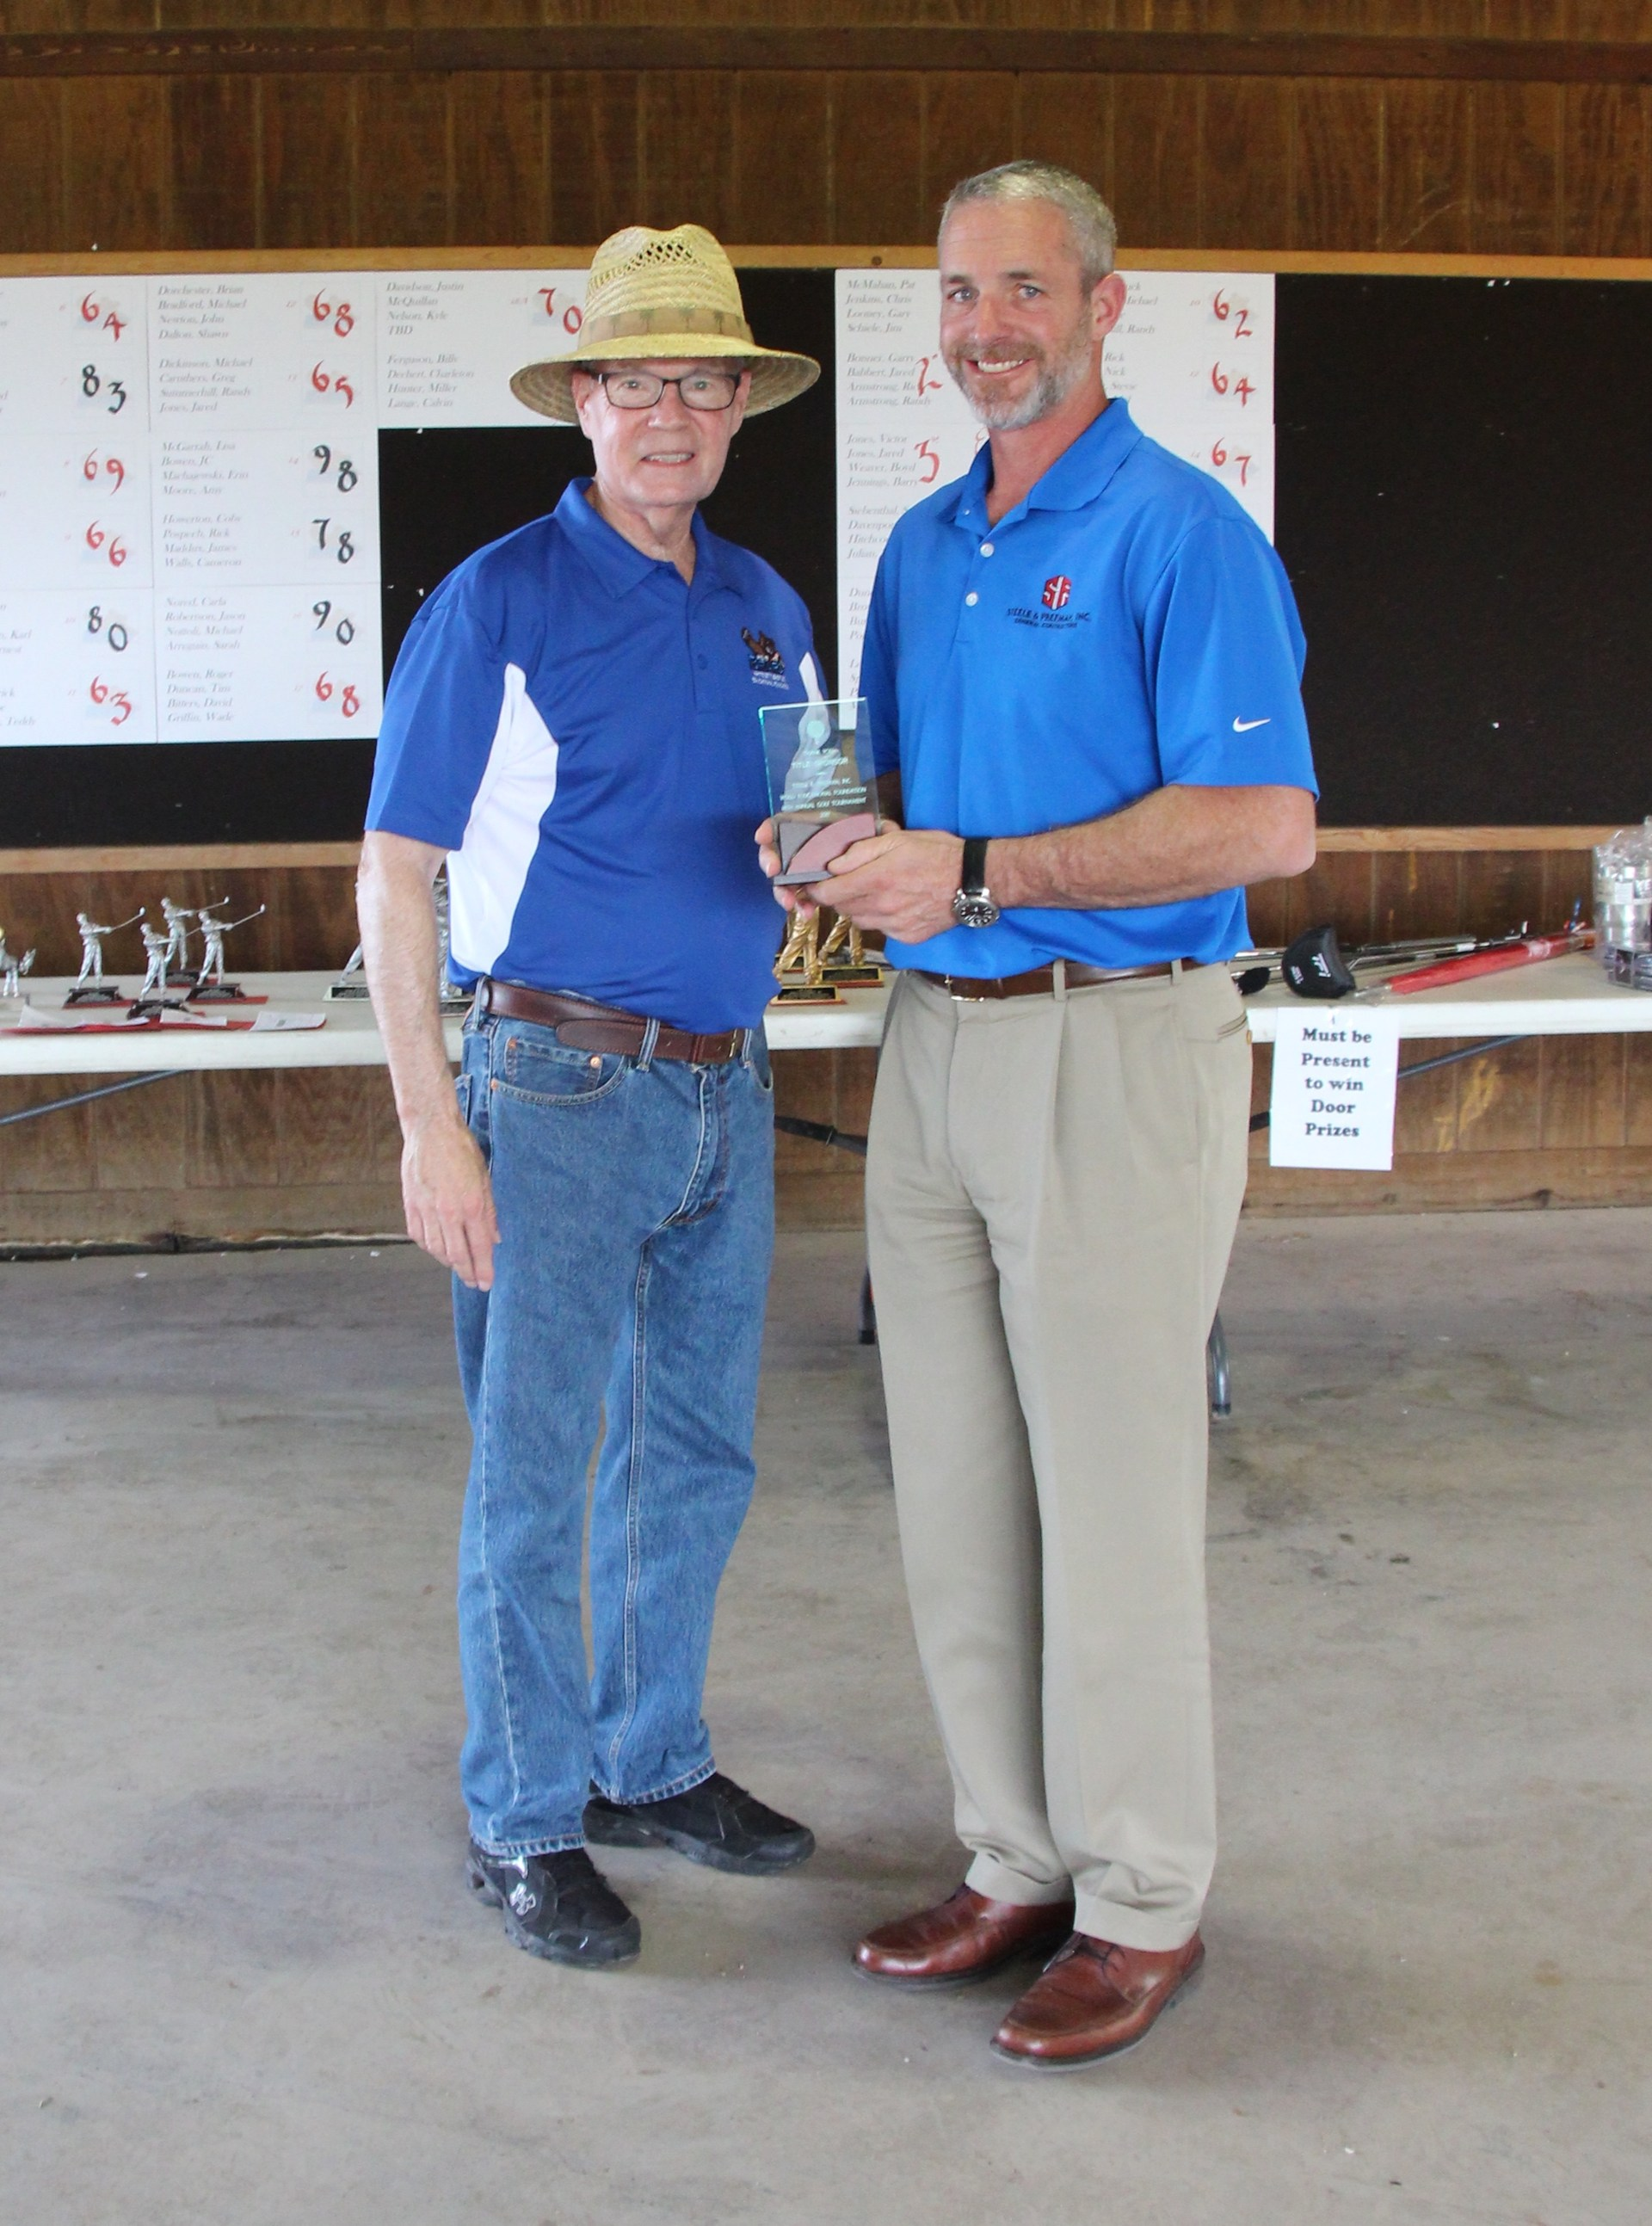 Mike Freeman's company Steele & Freeman, Inc. was the Title Sponsor of the tournament.